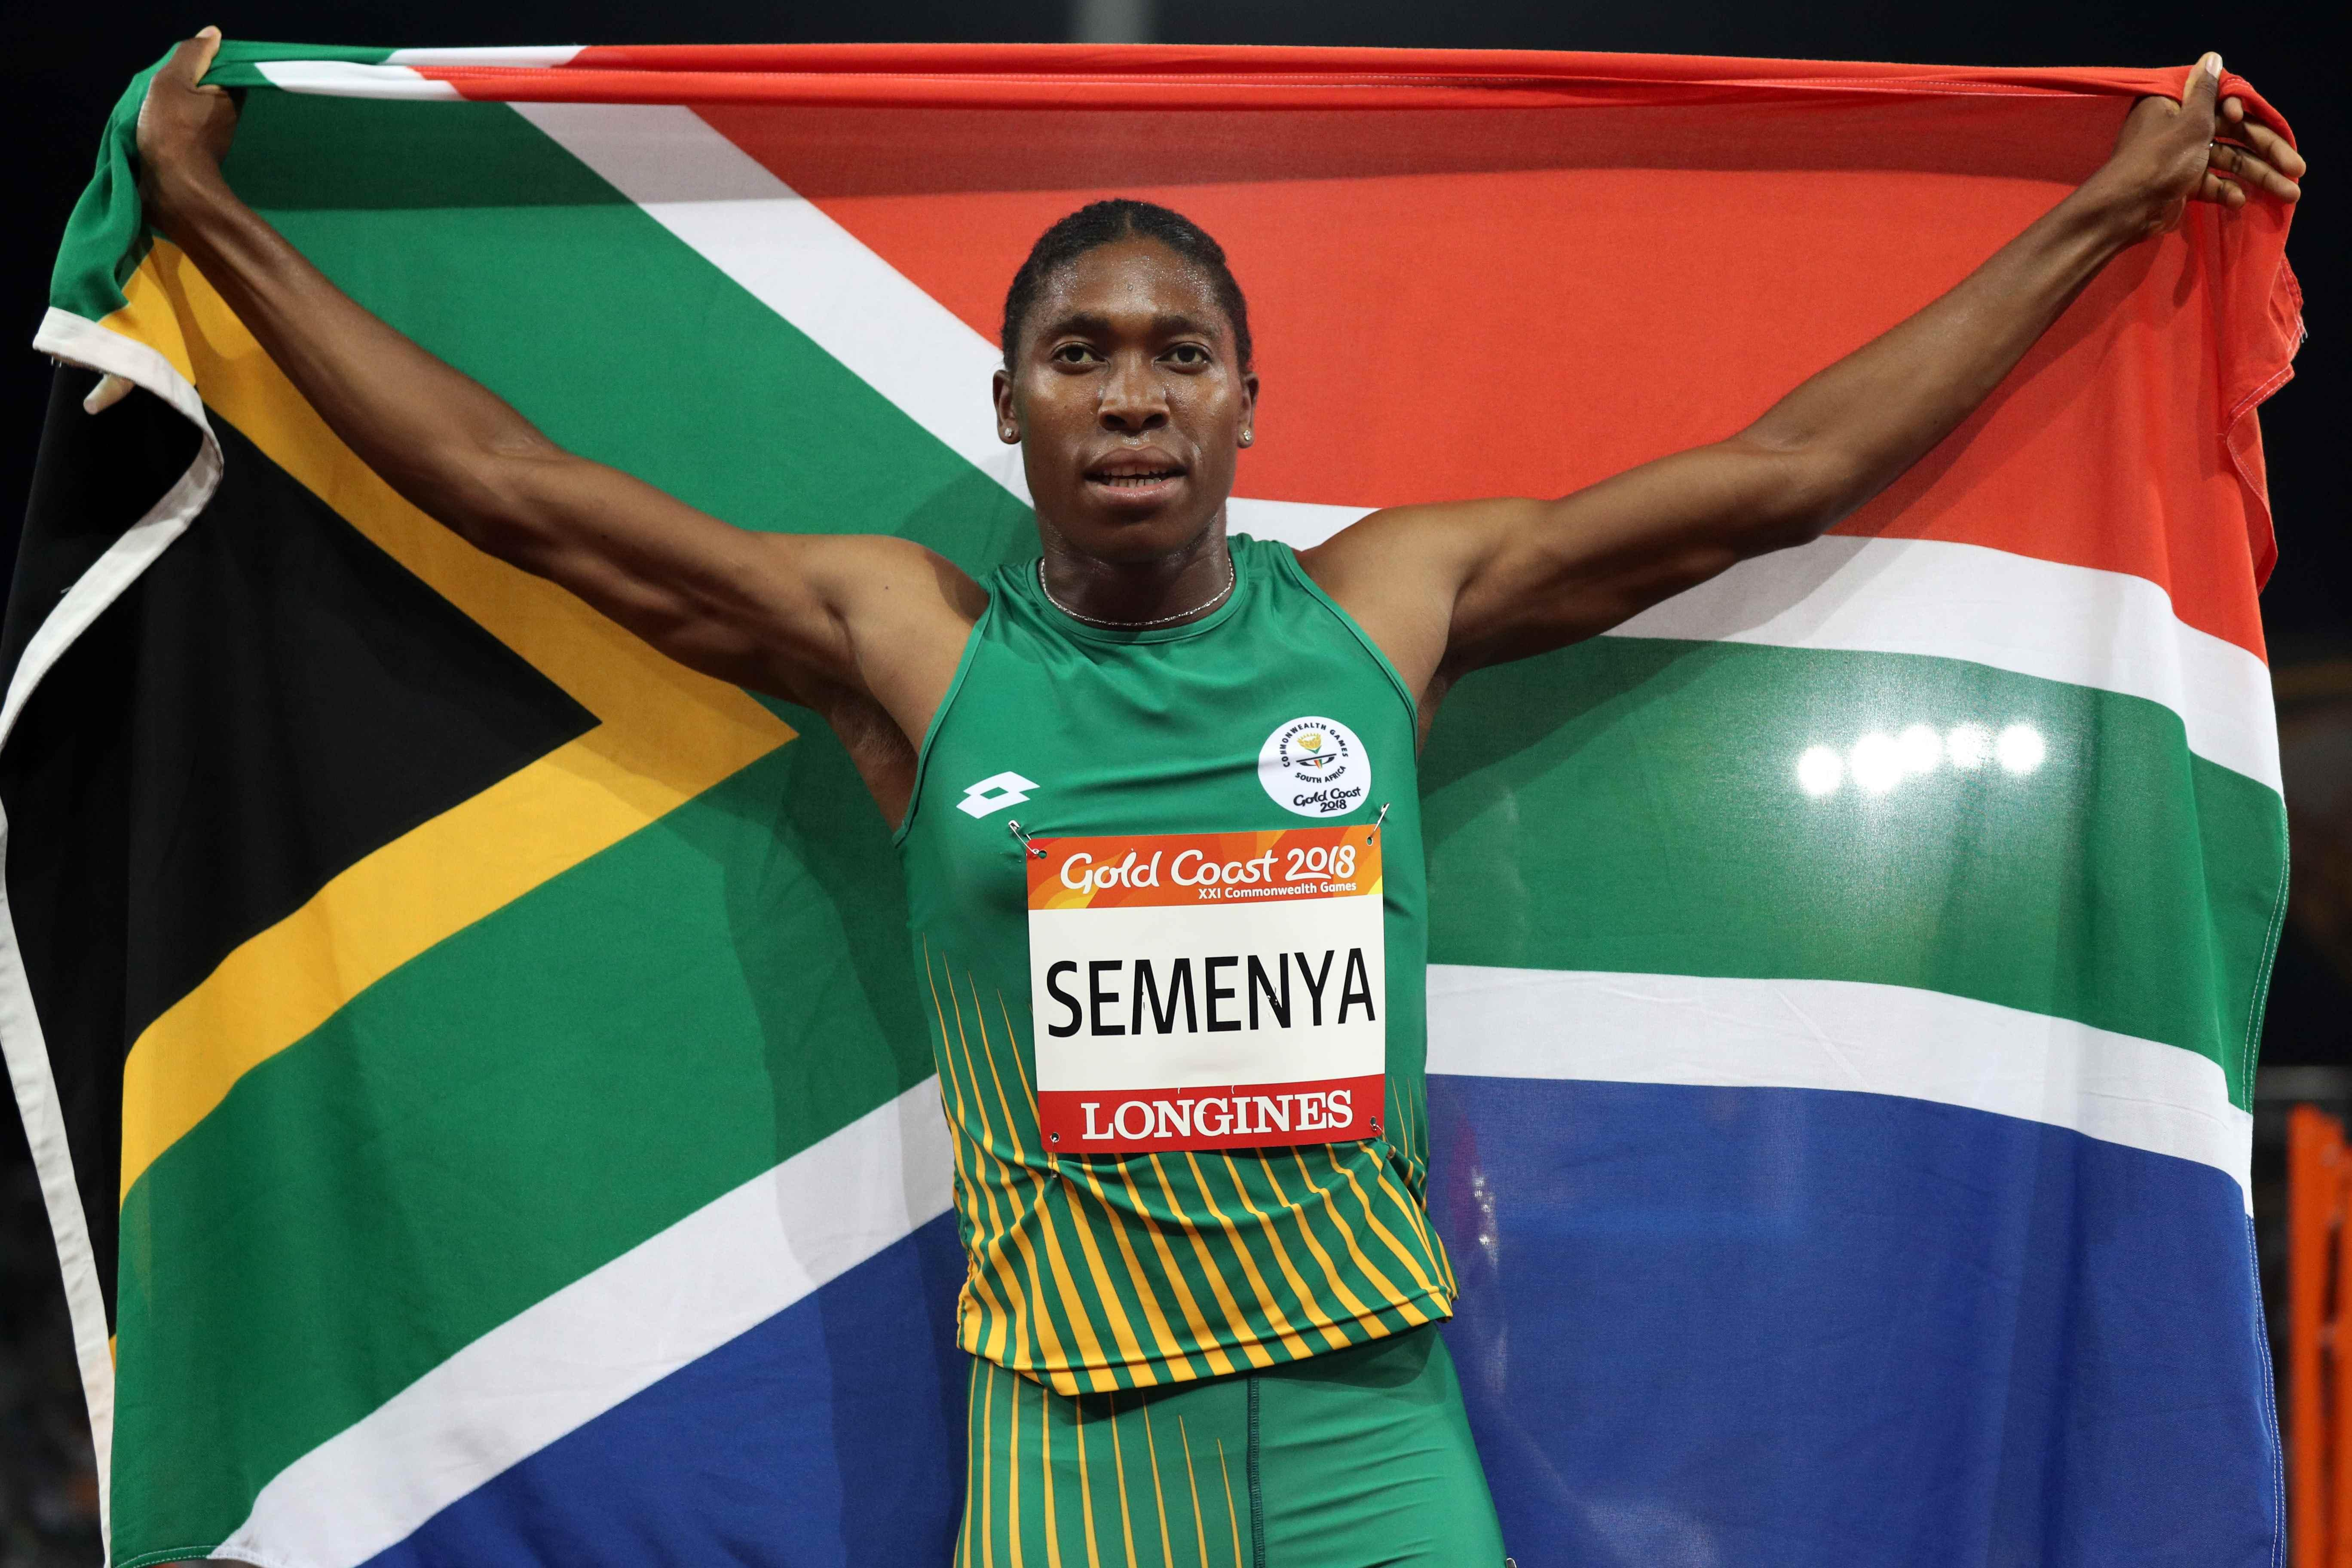 Semenya, 27, celebrates after claiming her second gold medal in Australia